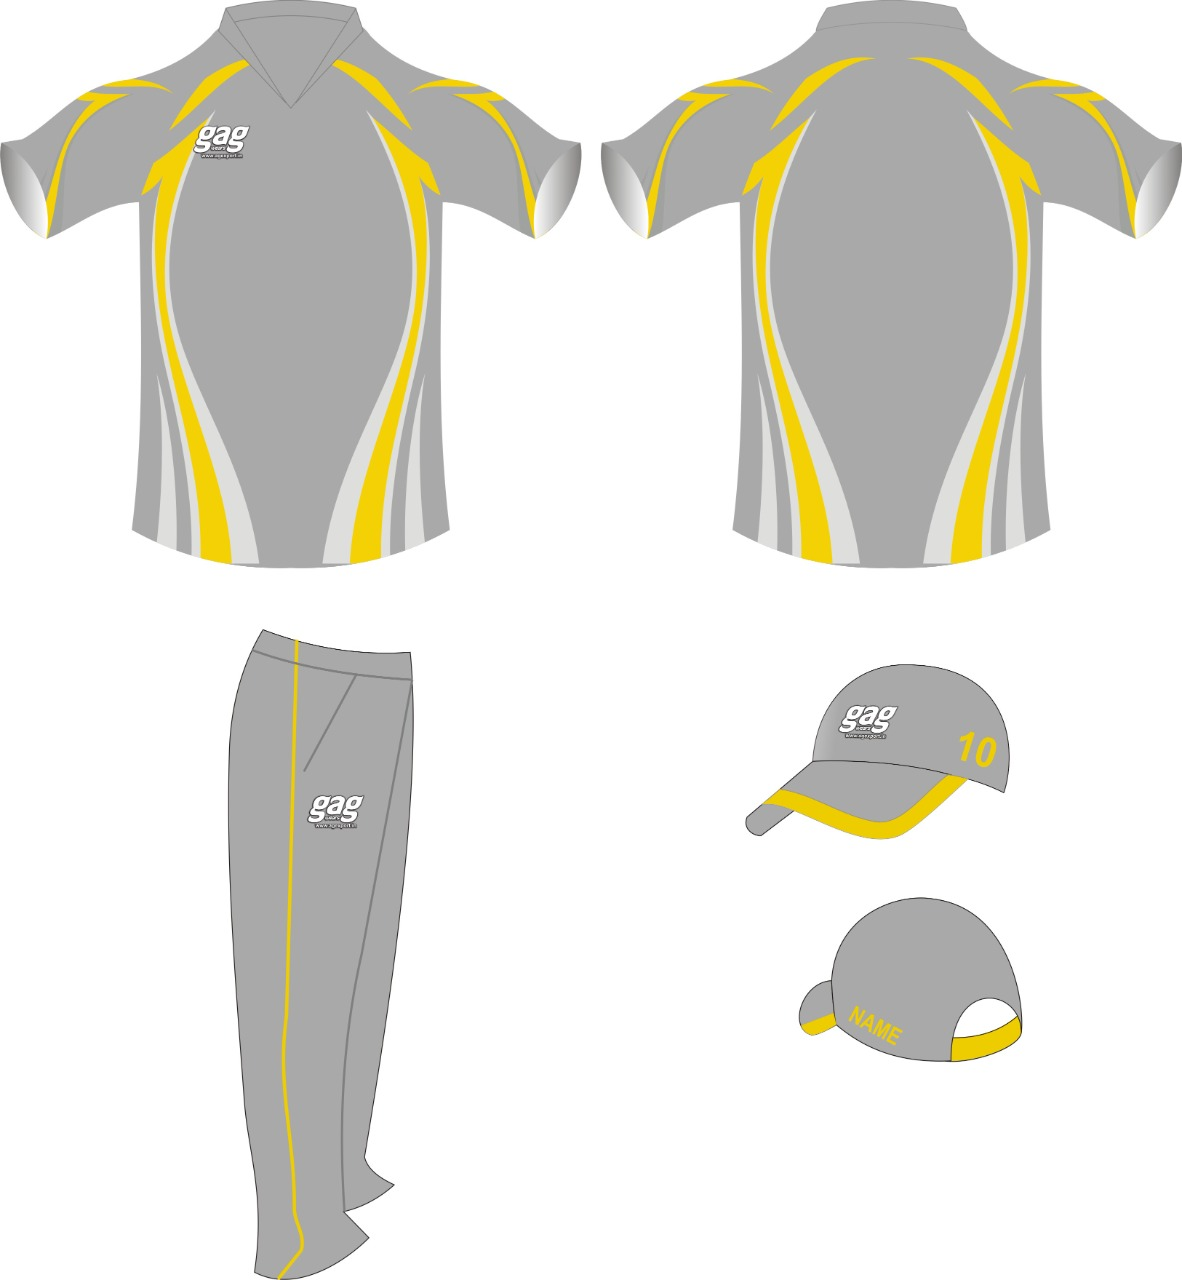 Cricket Tshirt Manufacturers in Jalandhar in Bahrain